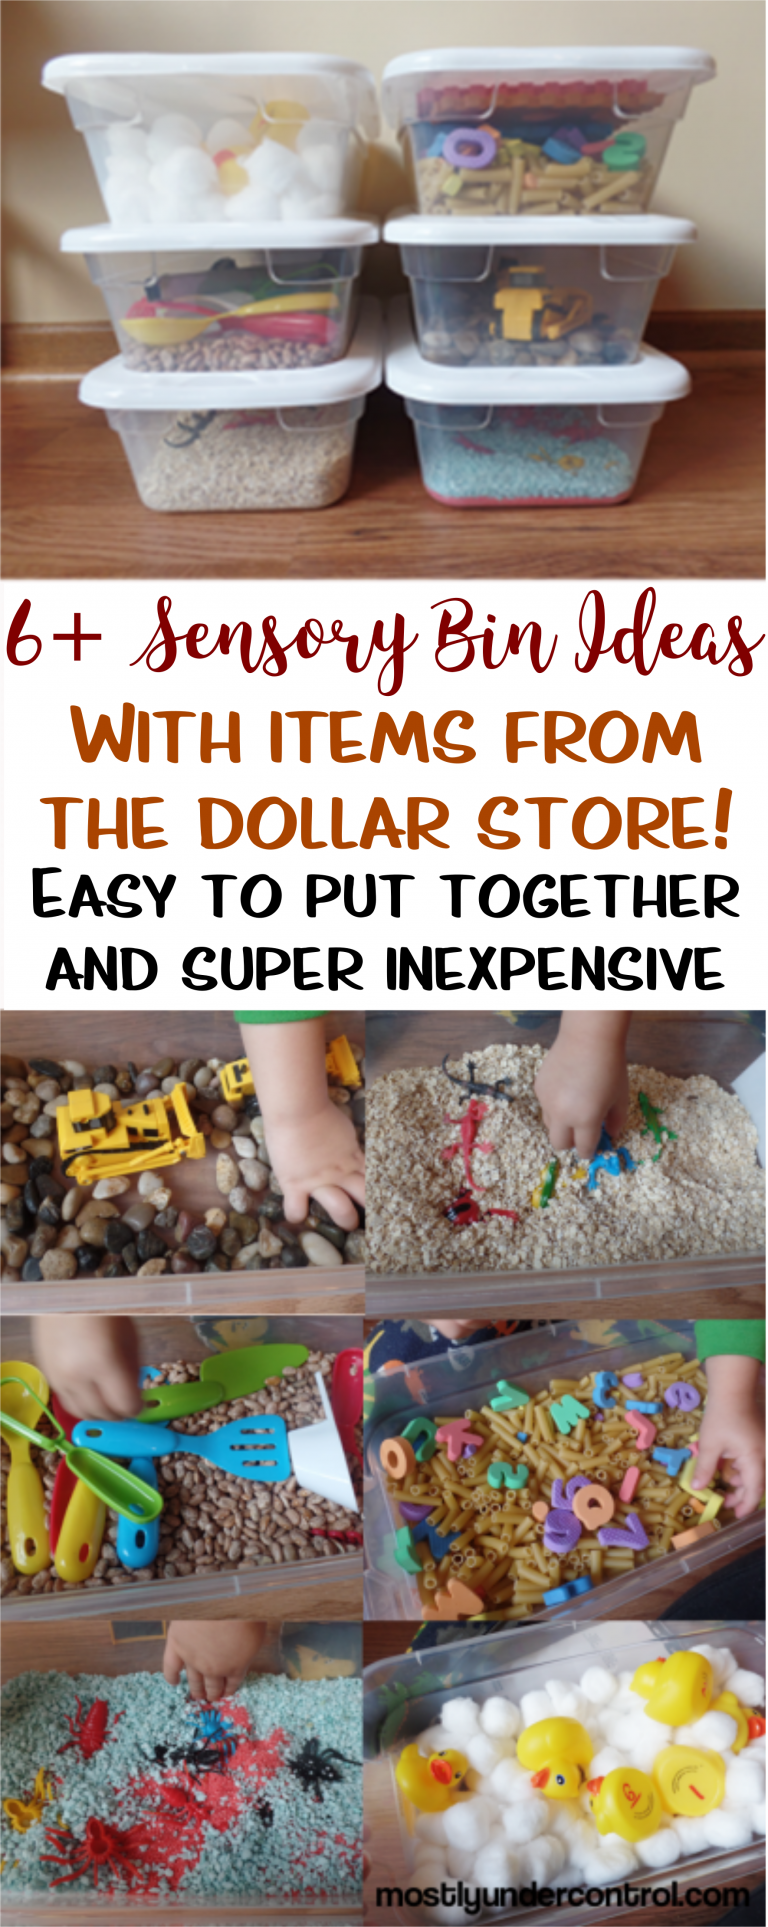 6+ Sensory Bins for under $30 - with tons of other ideas